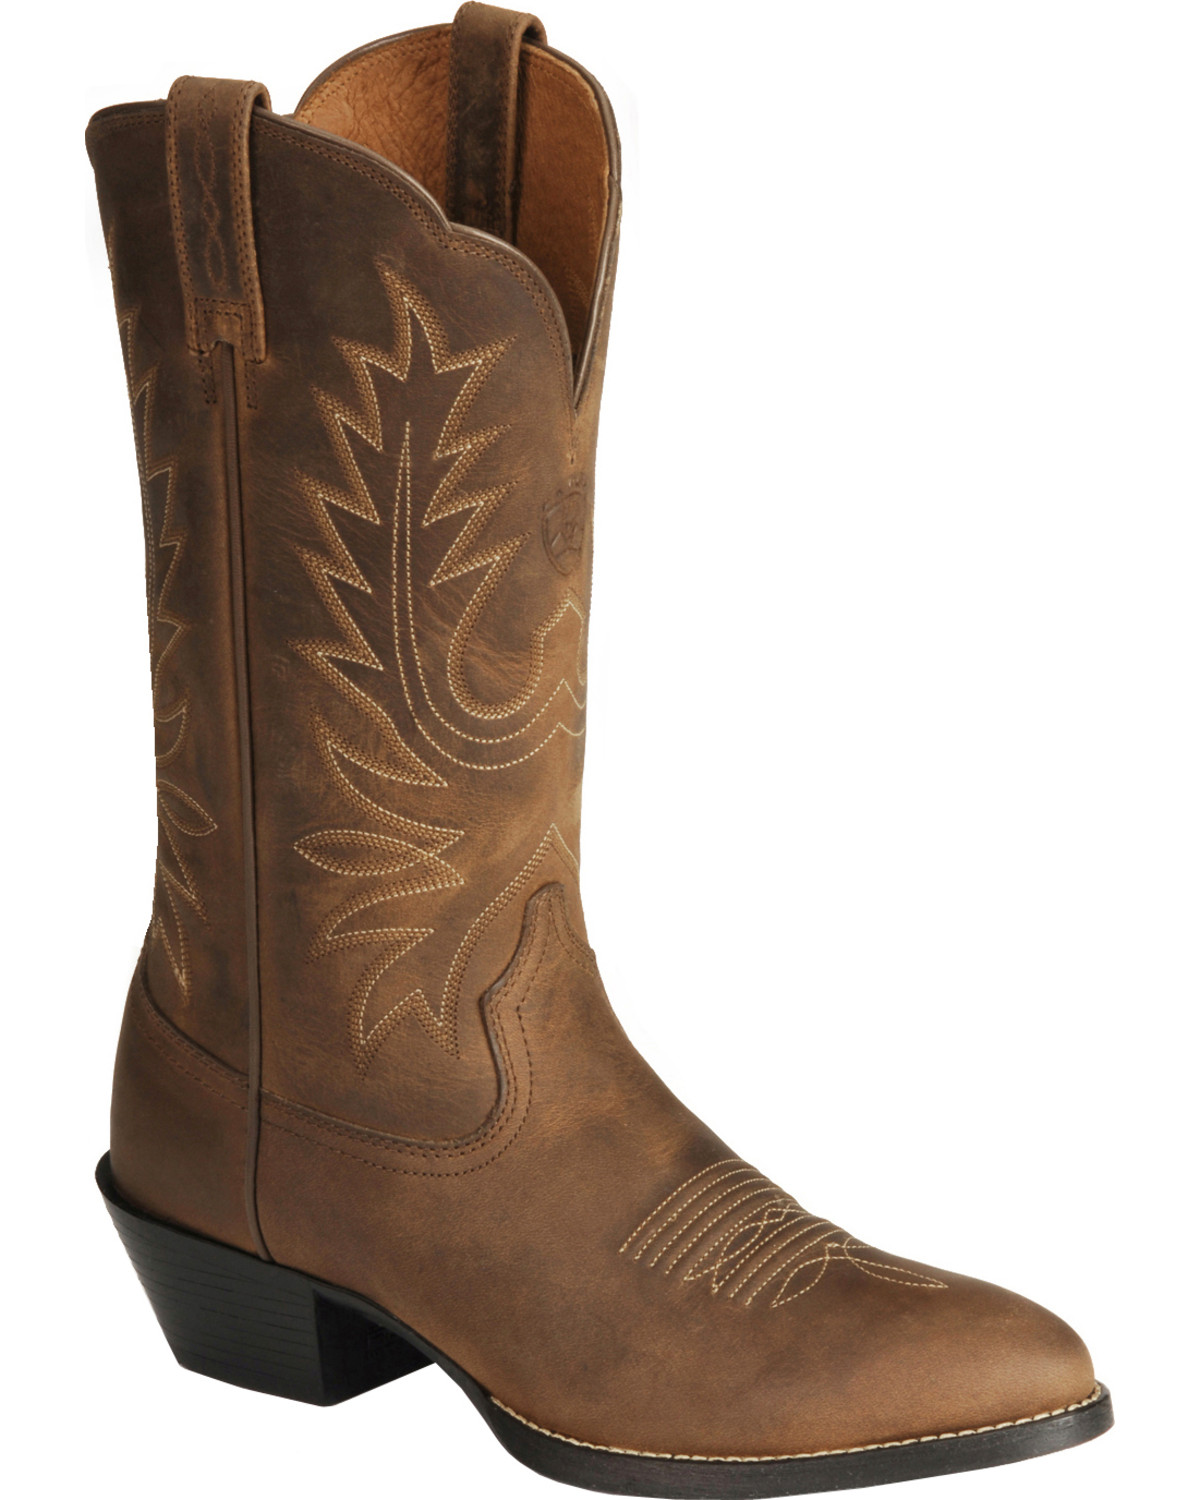 Horse Decor For The Home Ariat Heritage Cowgirl Boots Medium Toe Sheplers